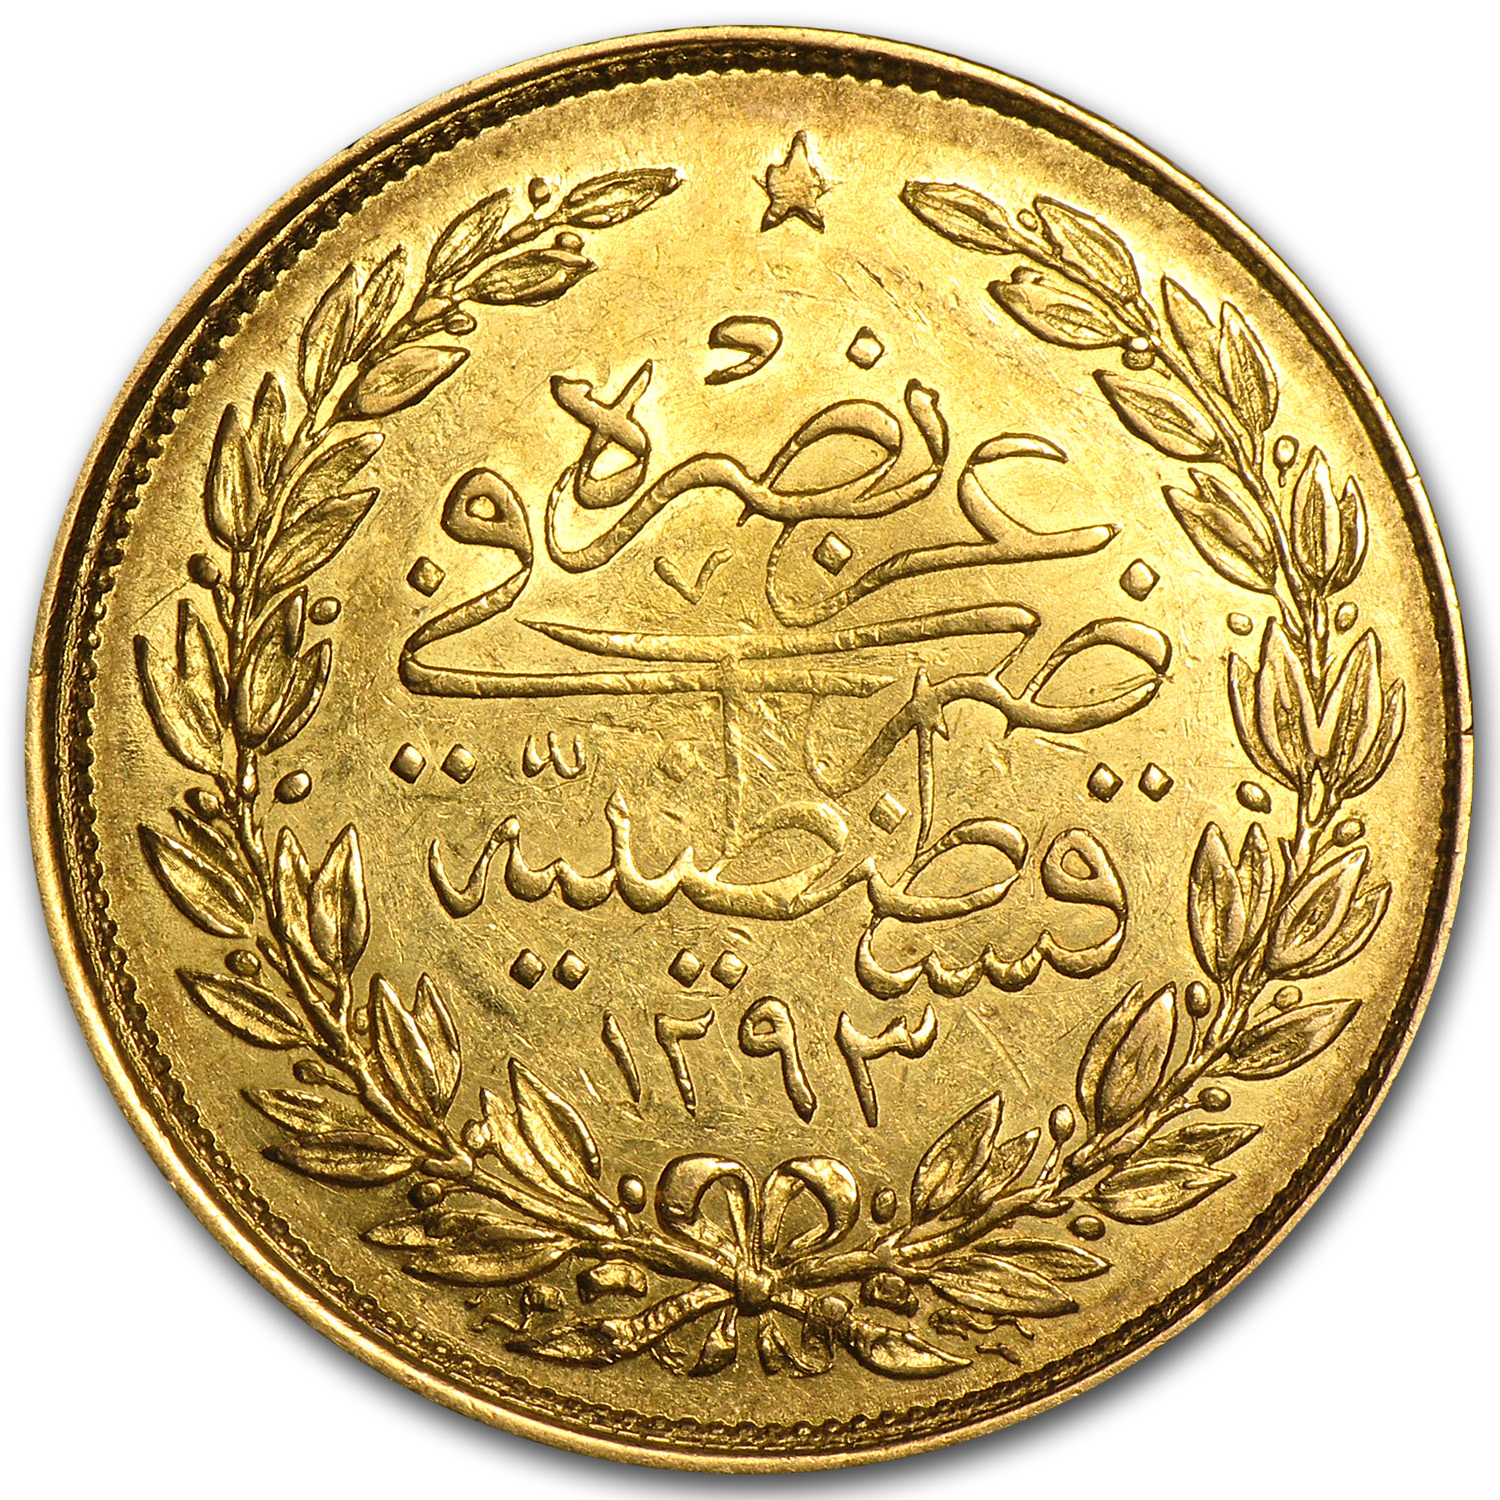 Turkey/Ottoman Gold 100 Kurush Average Circ (Random Dates)